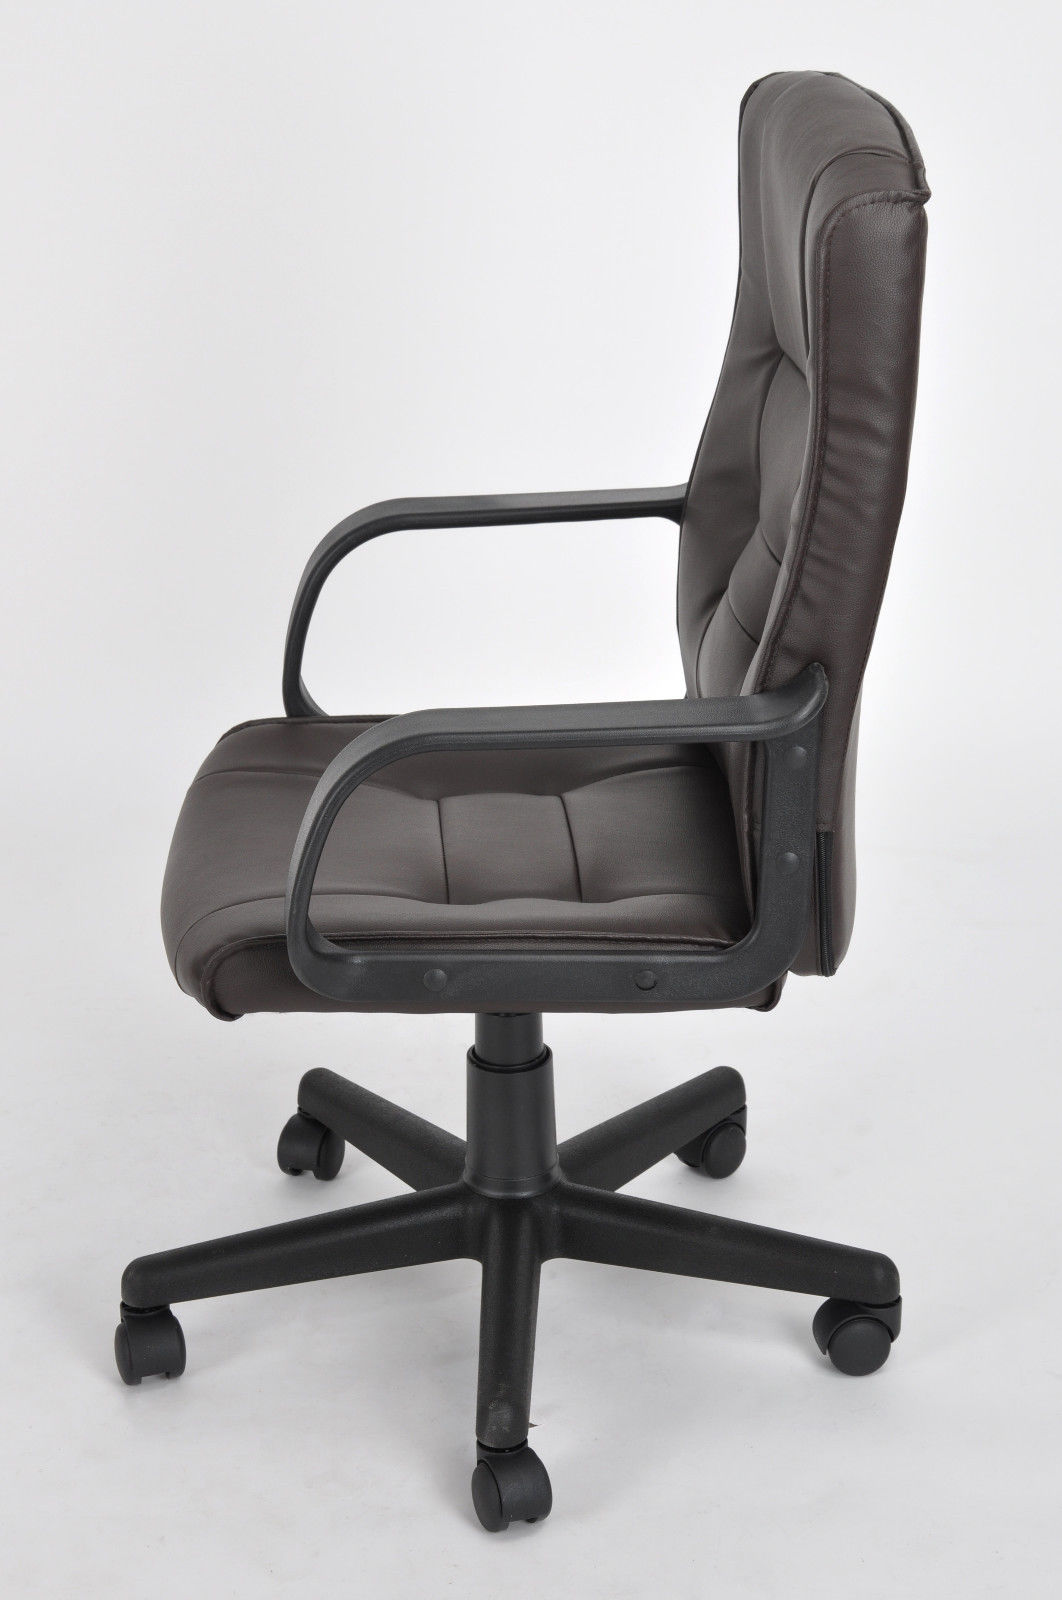 Brown Computer Chair High Back Pu Leather Executive Office Desk Task Computer